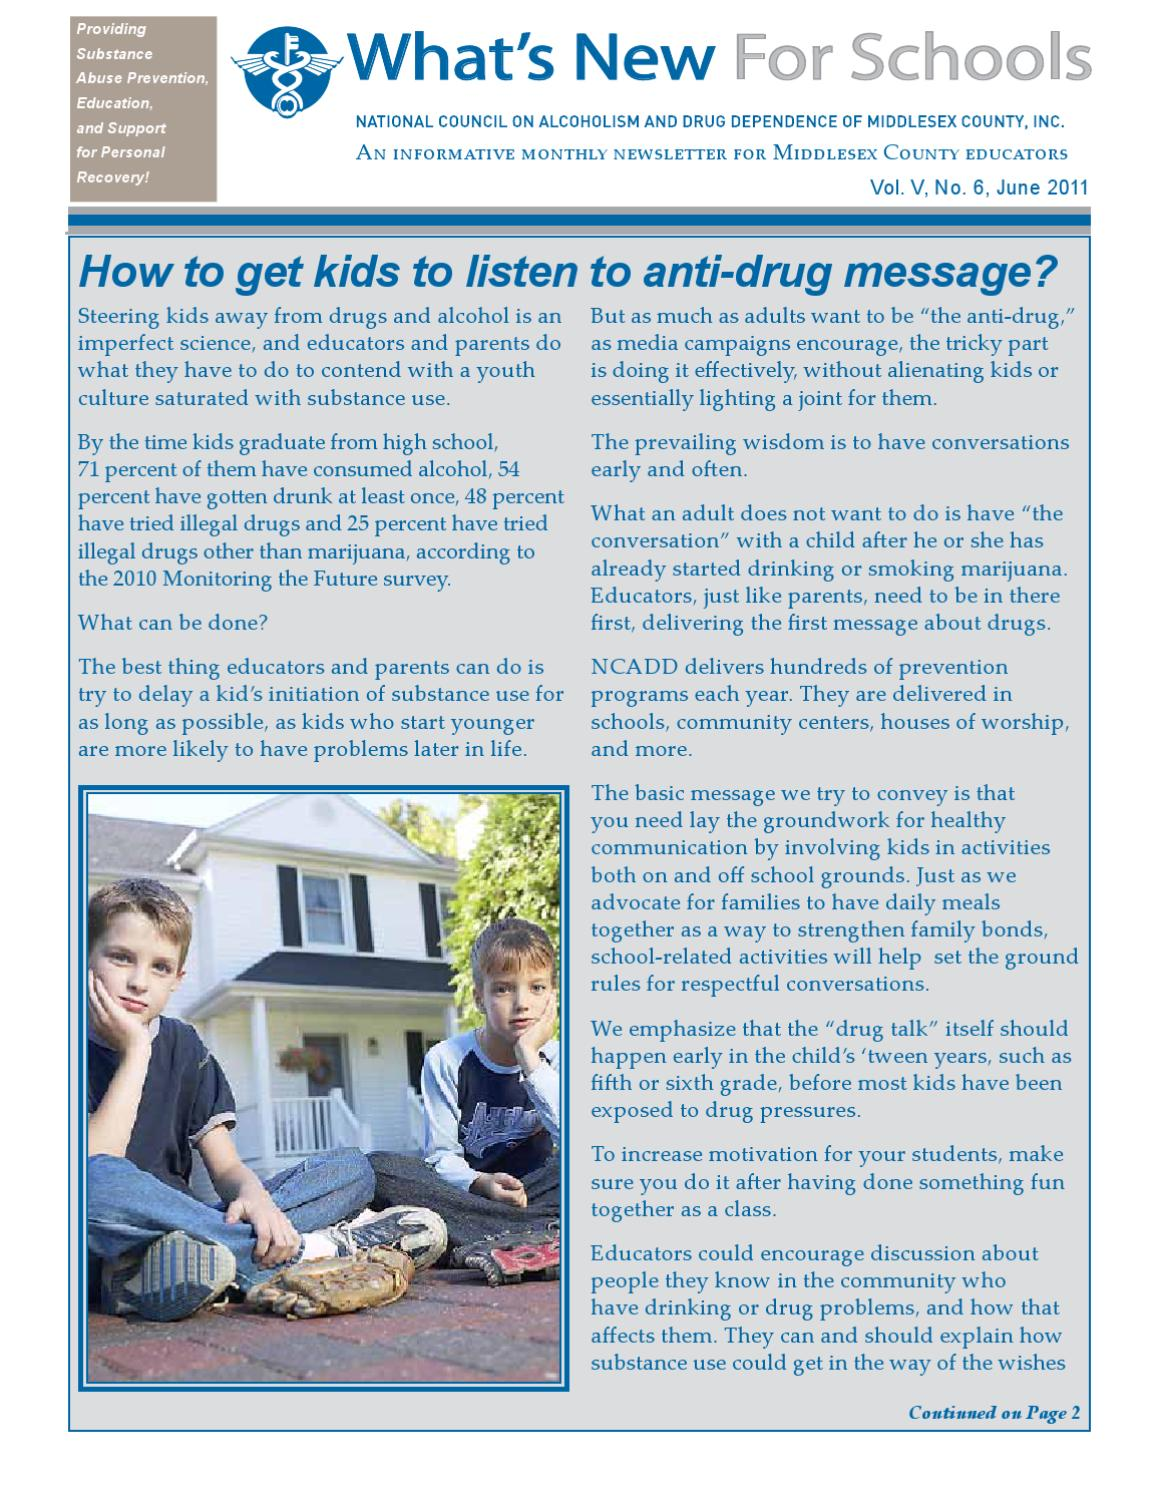 Start Conversations Early About Drugs >> Wnfs0611 By Ncadd Of Middlesex County Inc Issuu